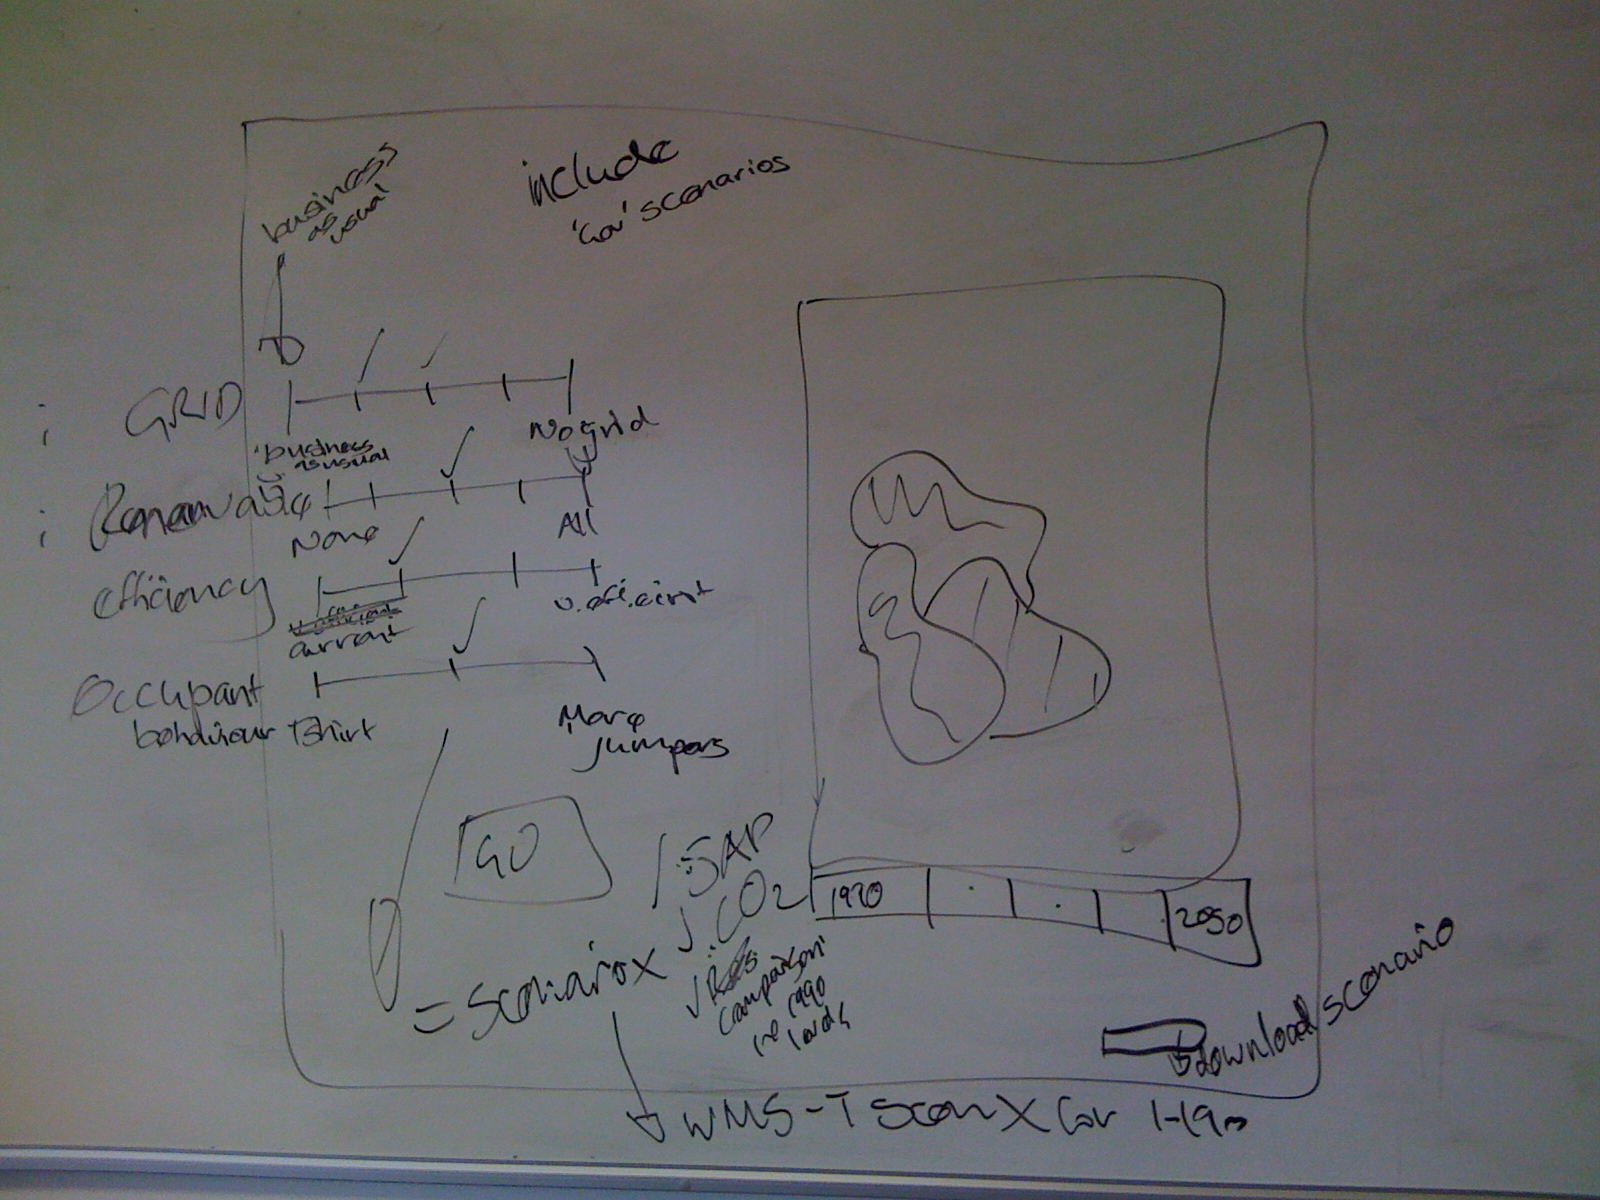 Rough sketch of proposed STEEV tool user interface